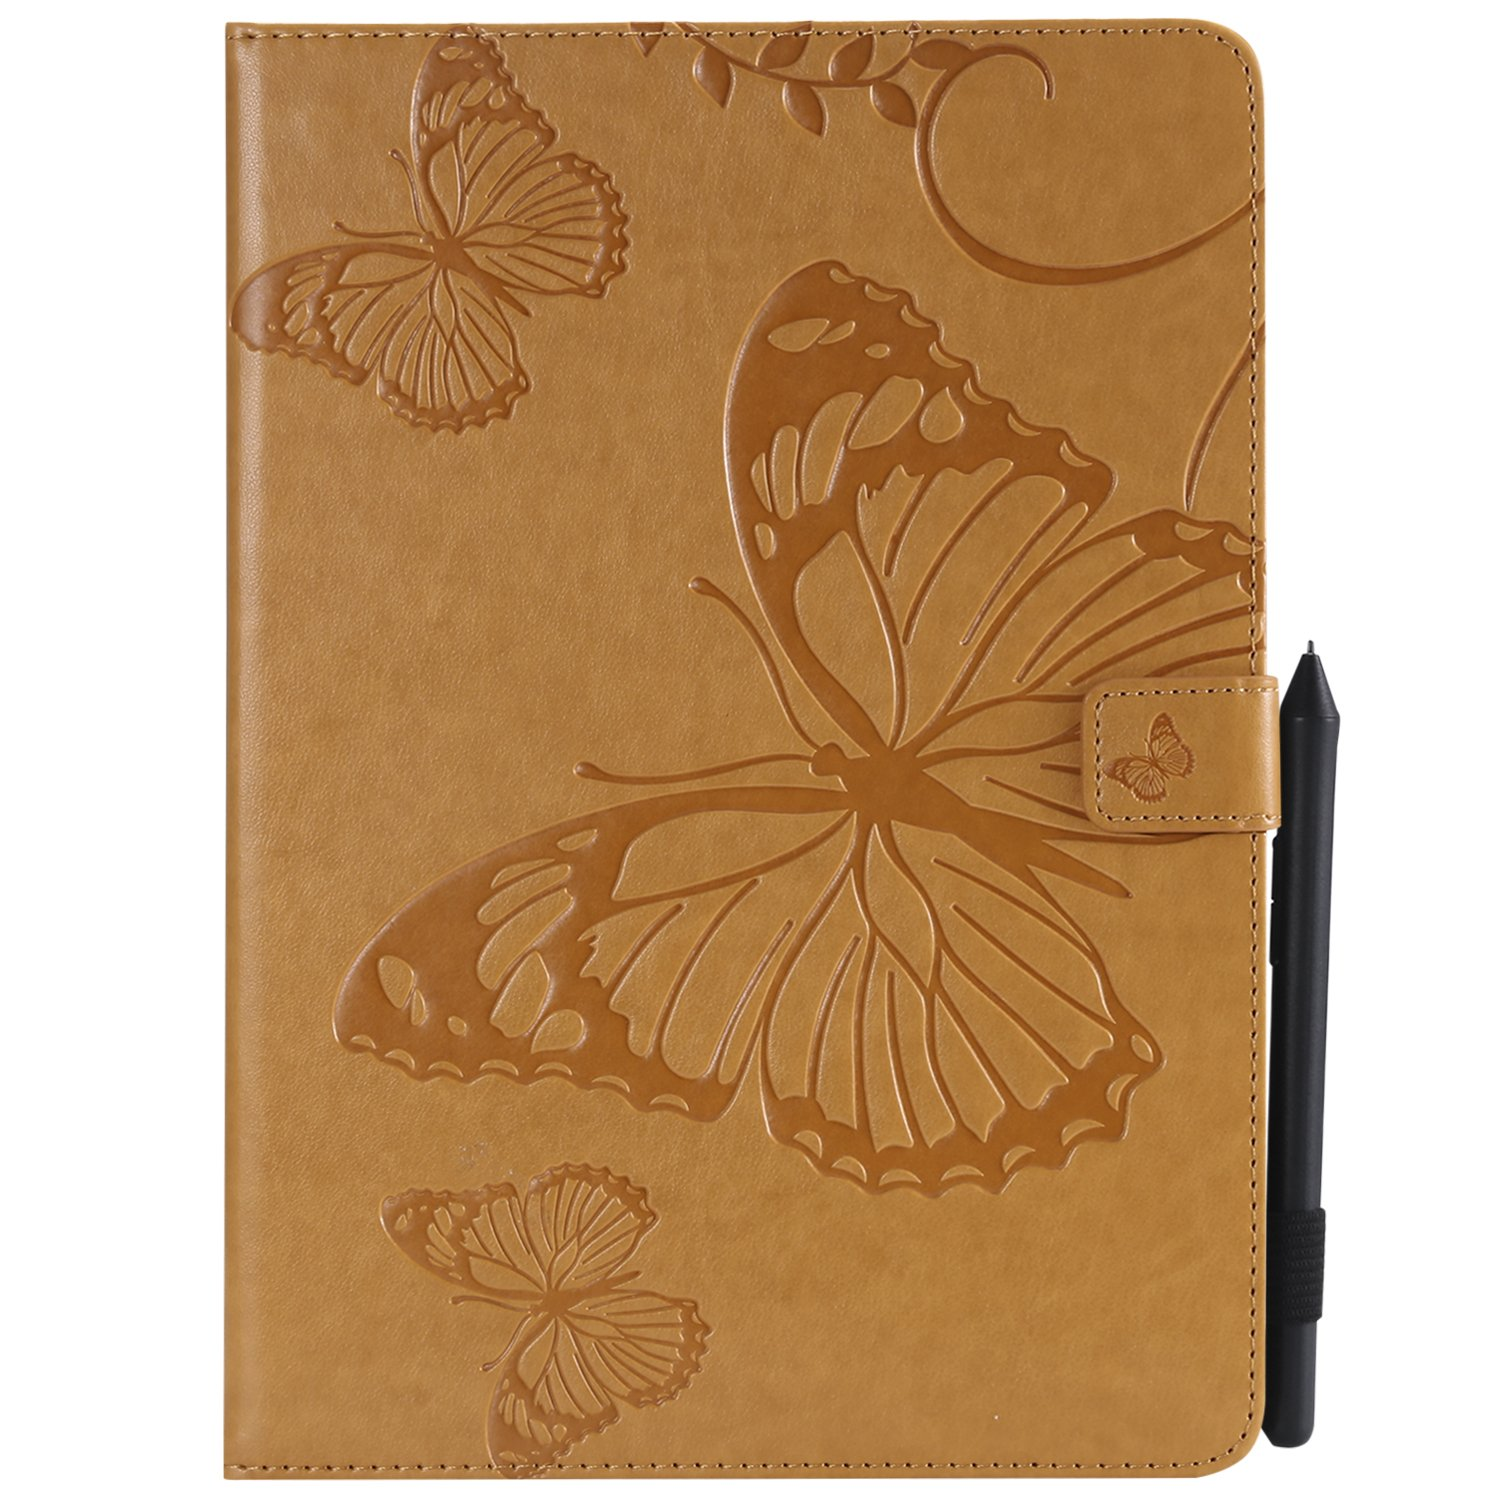 Bear Village iPad Pro 9.7 Inch Case, Butterfly Embossed Anti Scratch Shell with Adjust Stand, Smart Stand PU Leather Case for Apple iPad Pro 9.7 Inch, Yellow by Bear Village